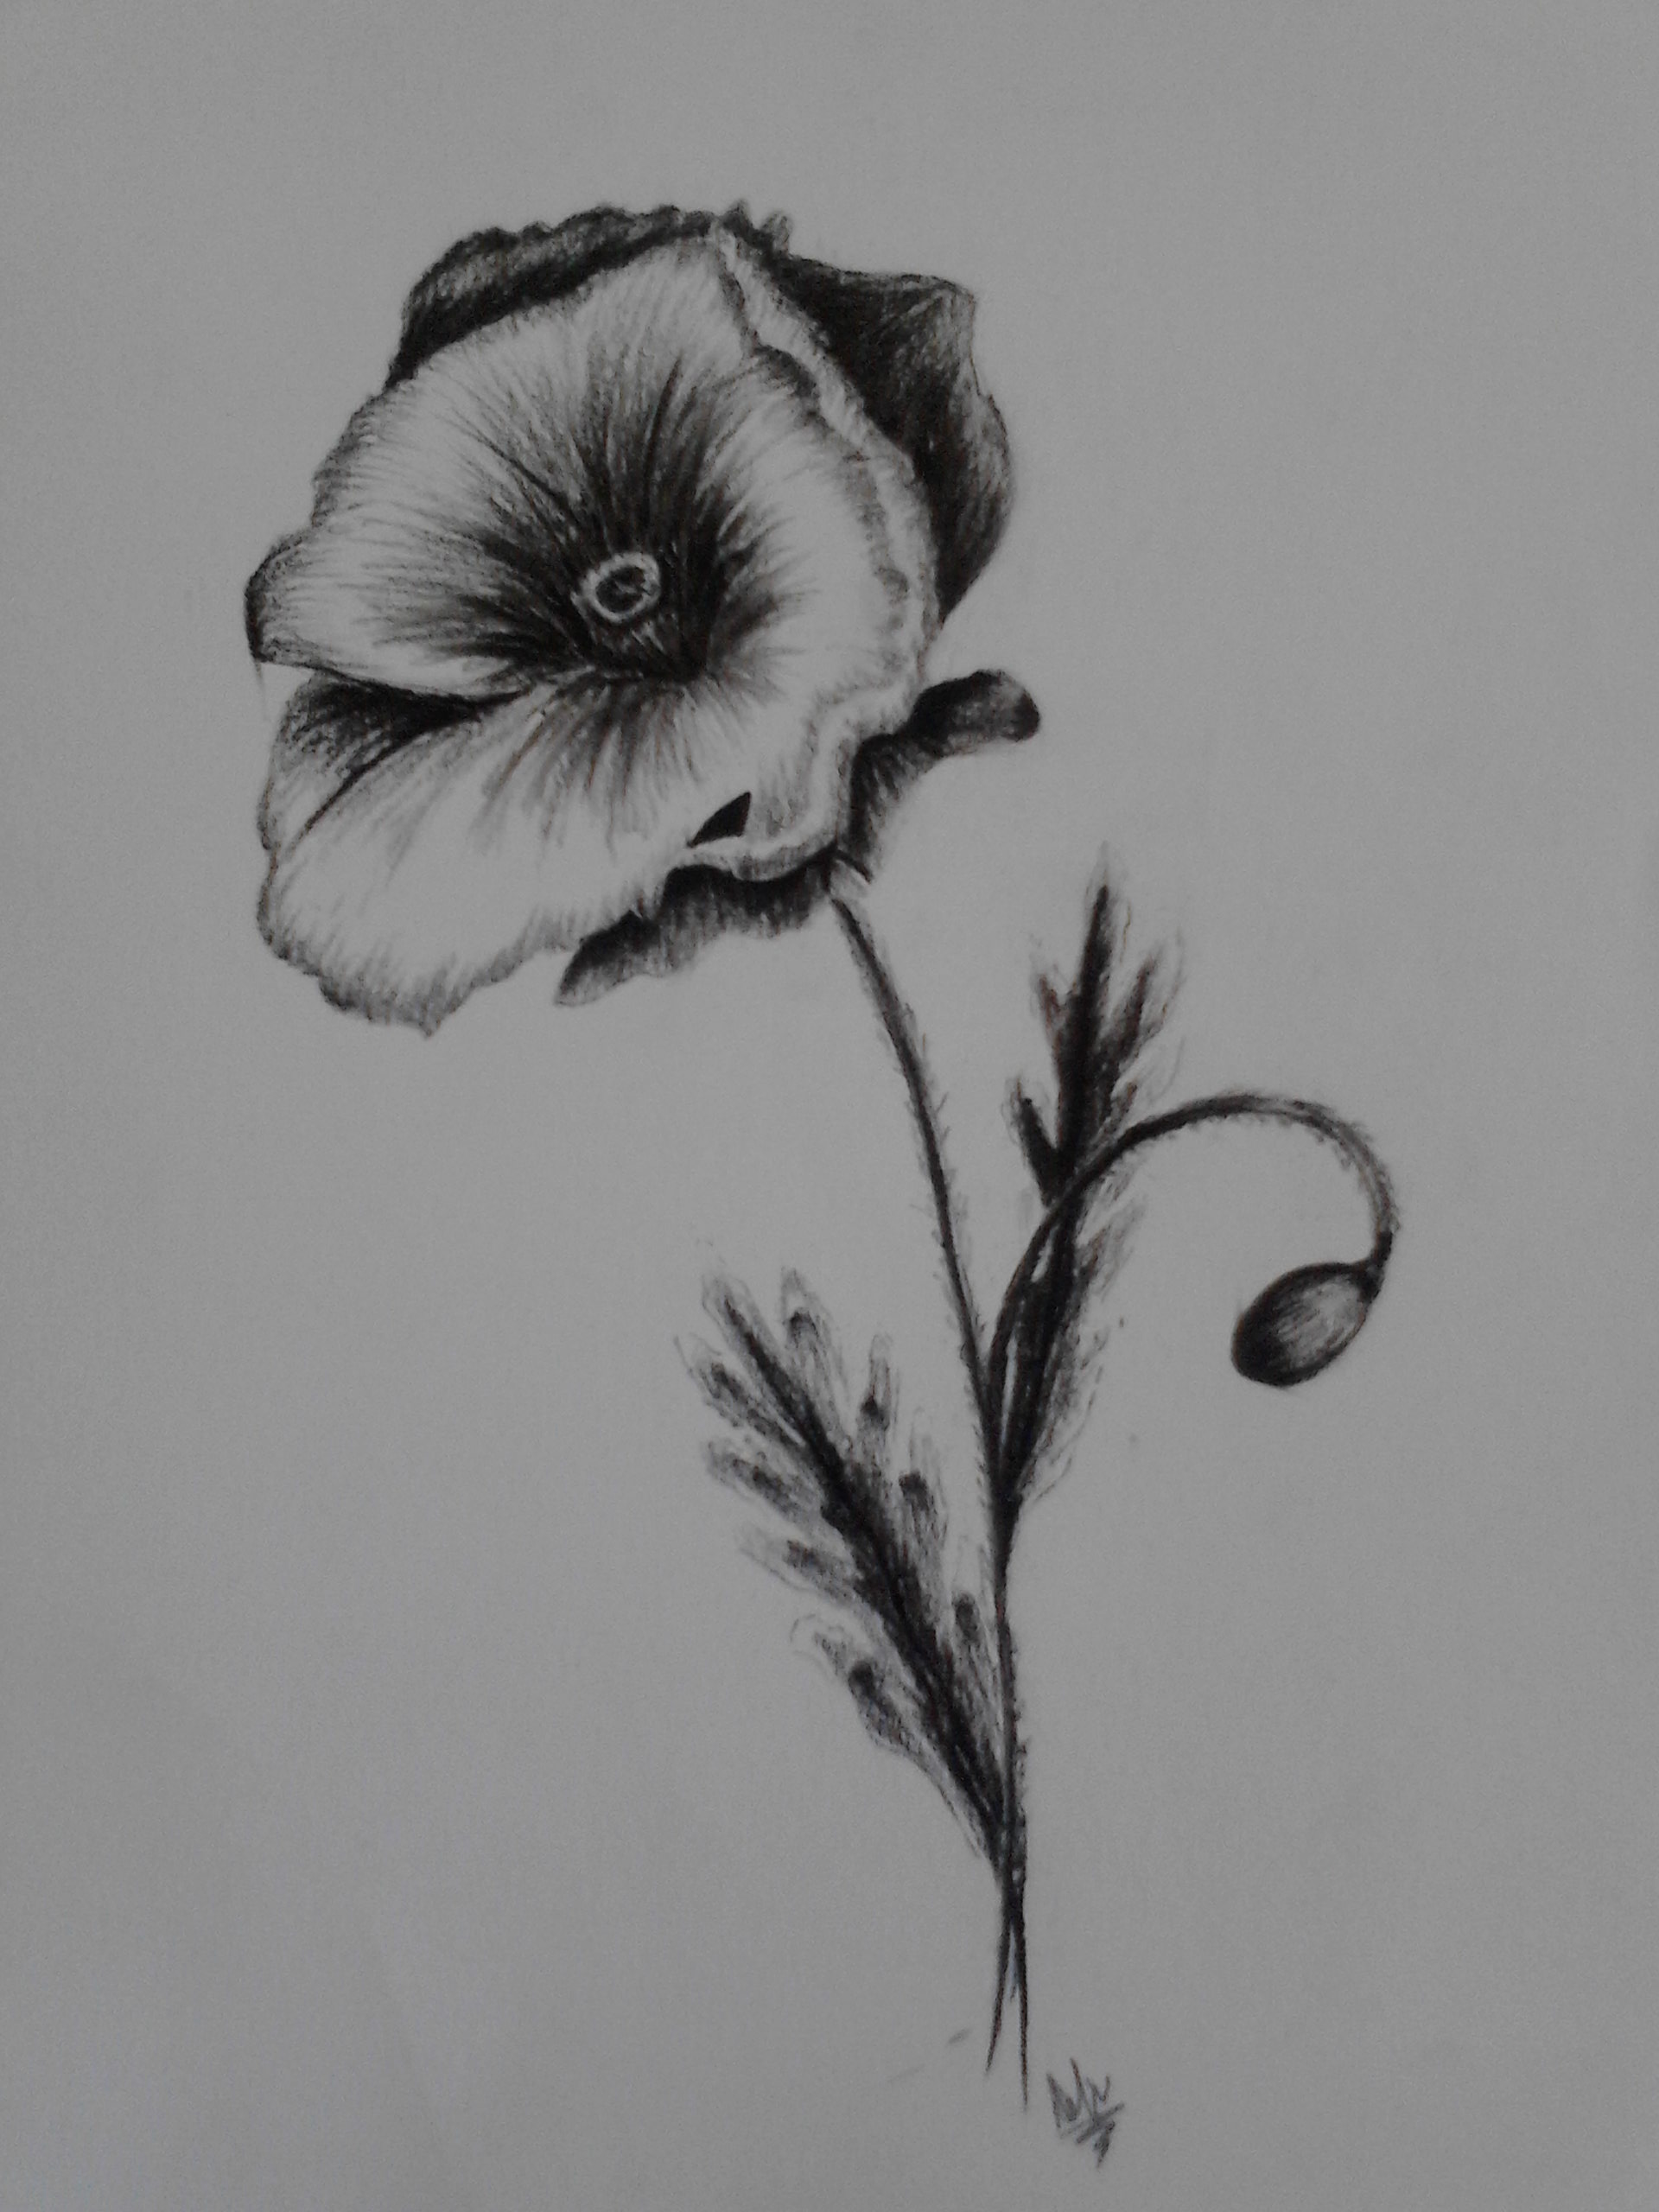 Drawn poppy charcoal Drawing With 2017 Charcoal With